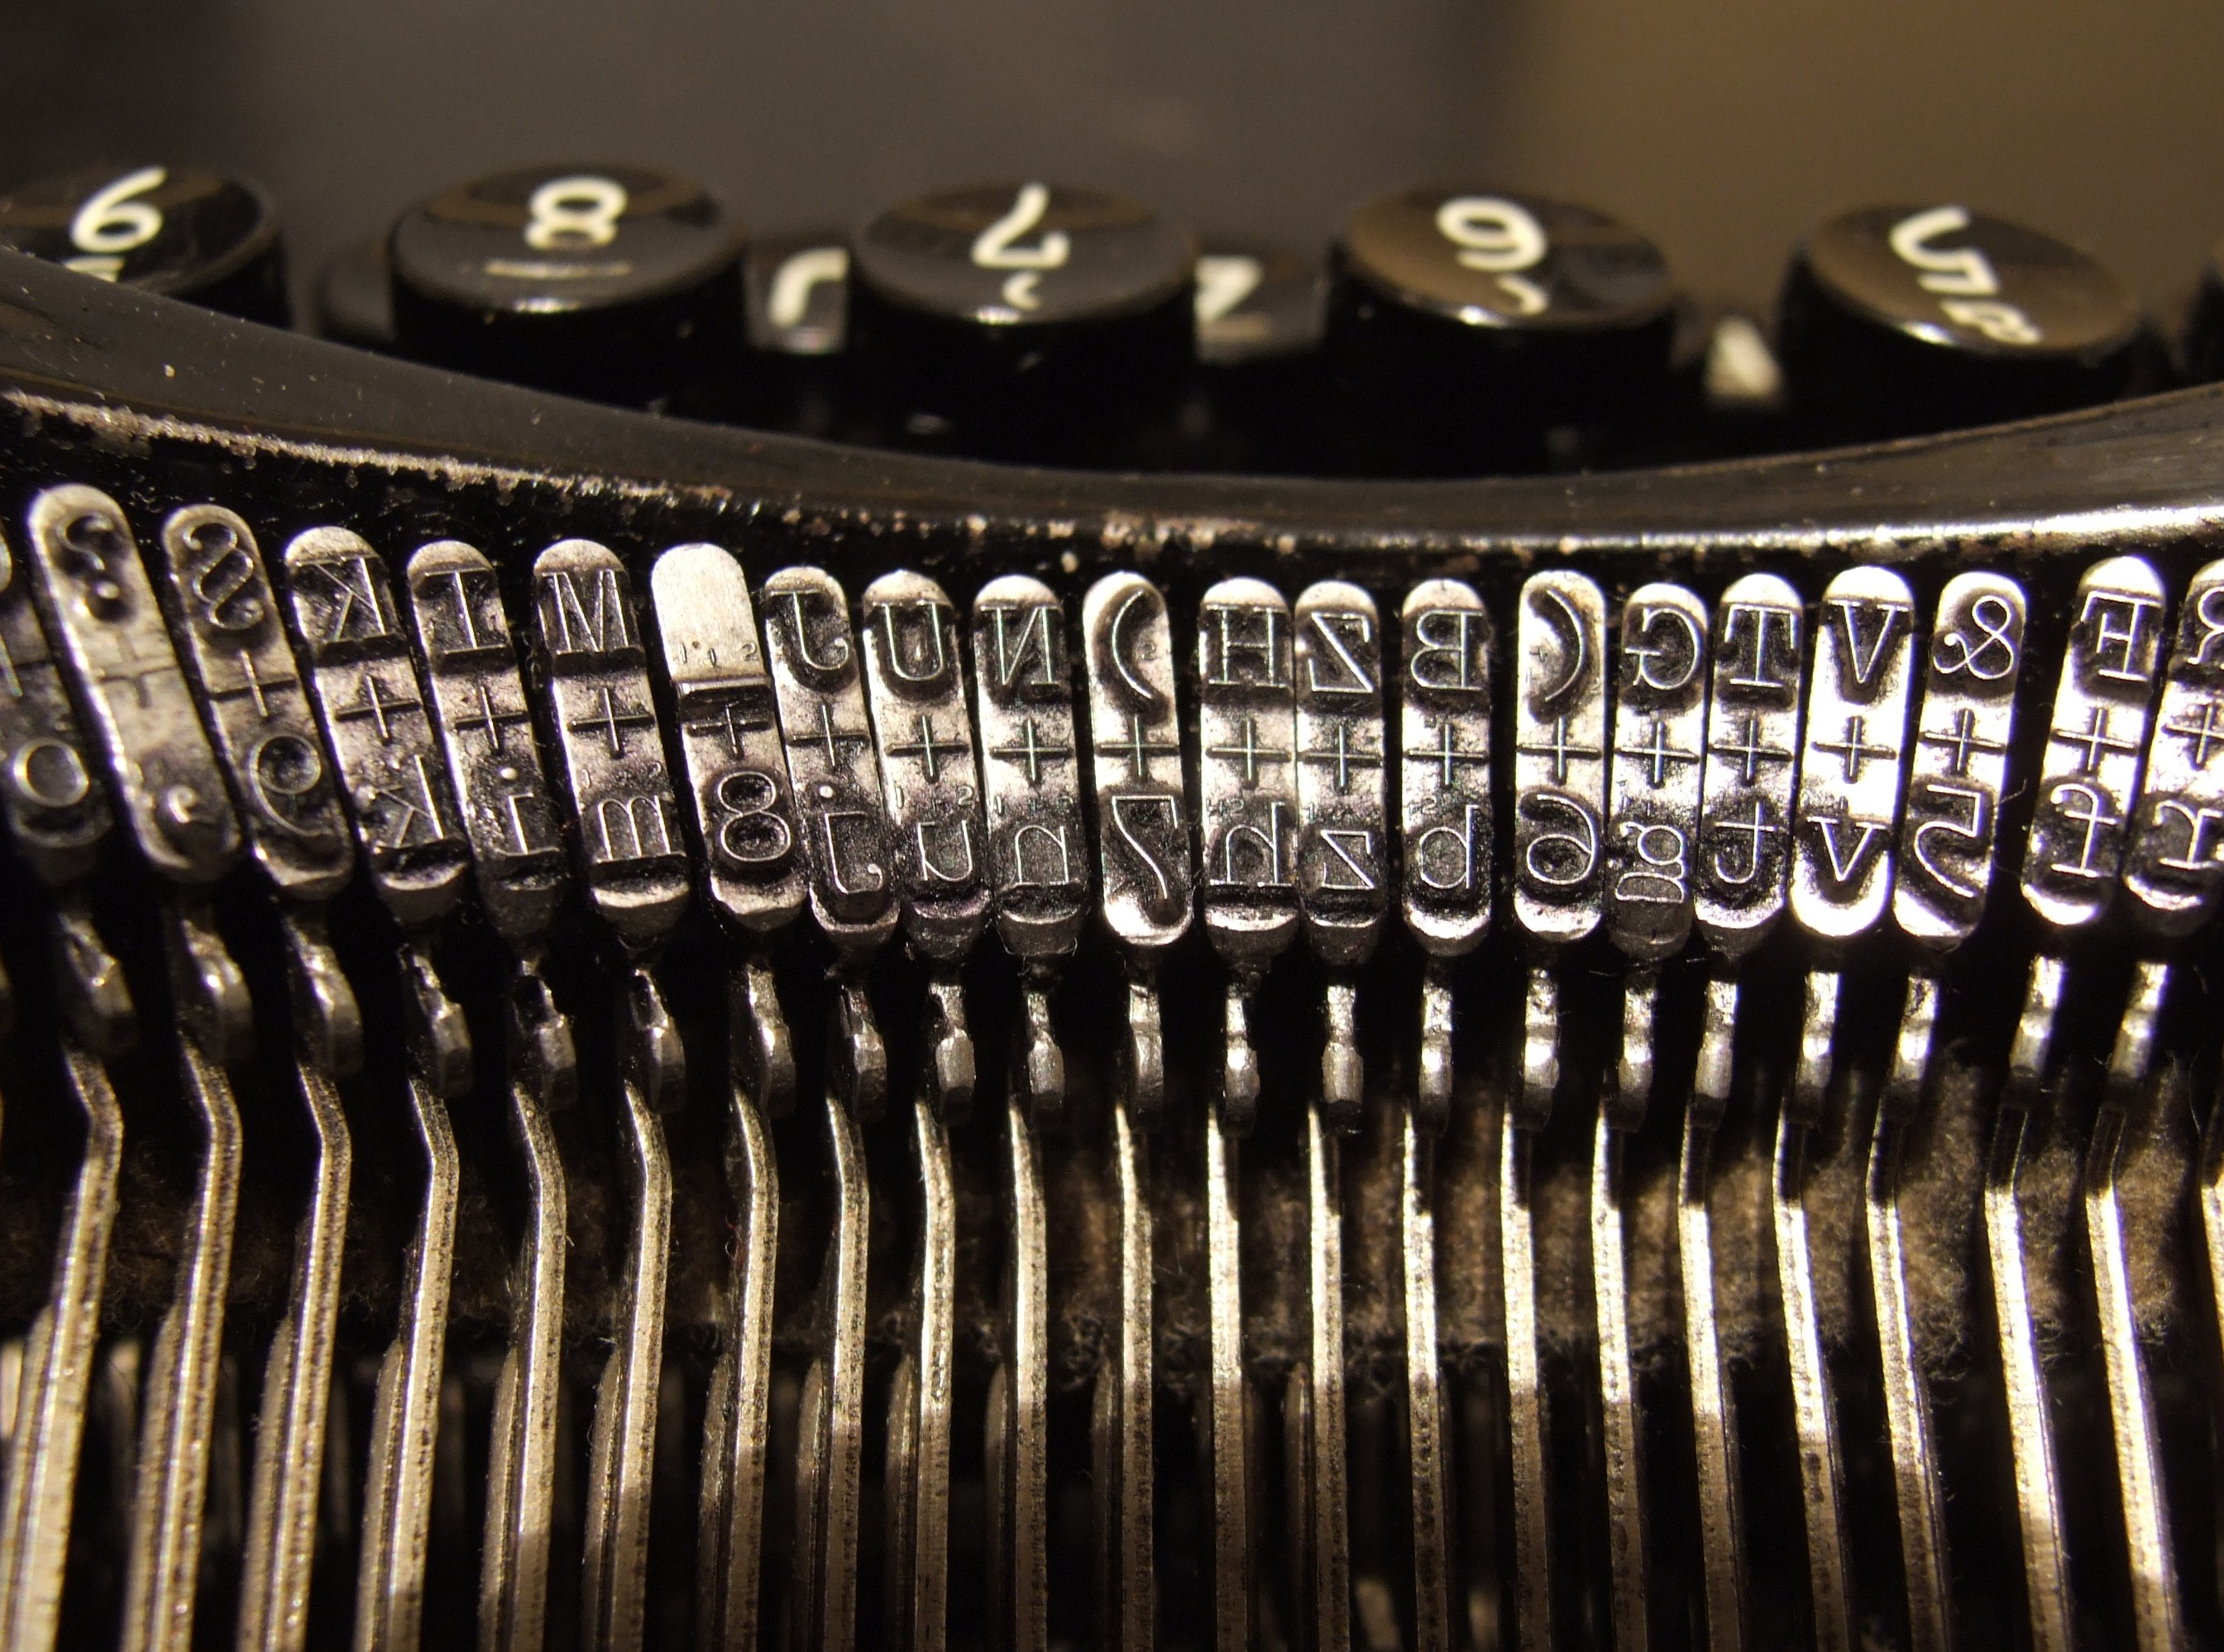 Typebars in a 1920s typewriter